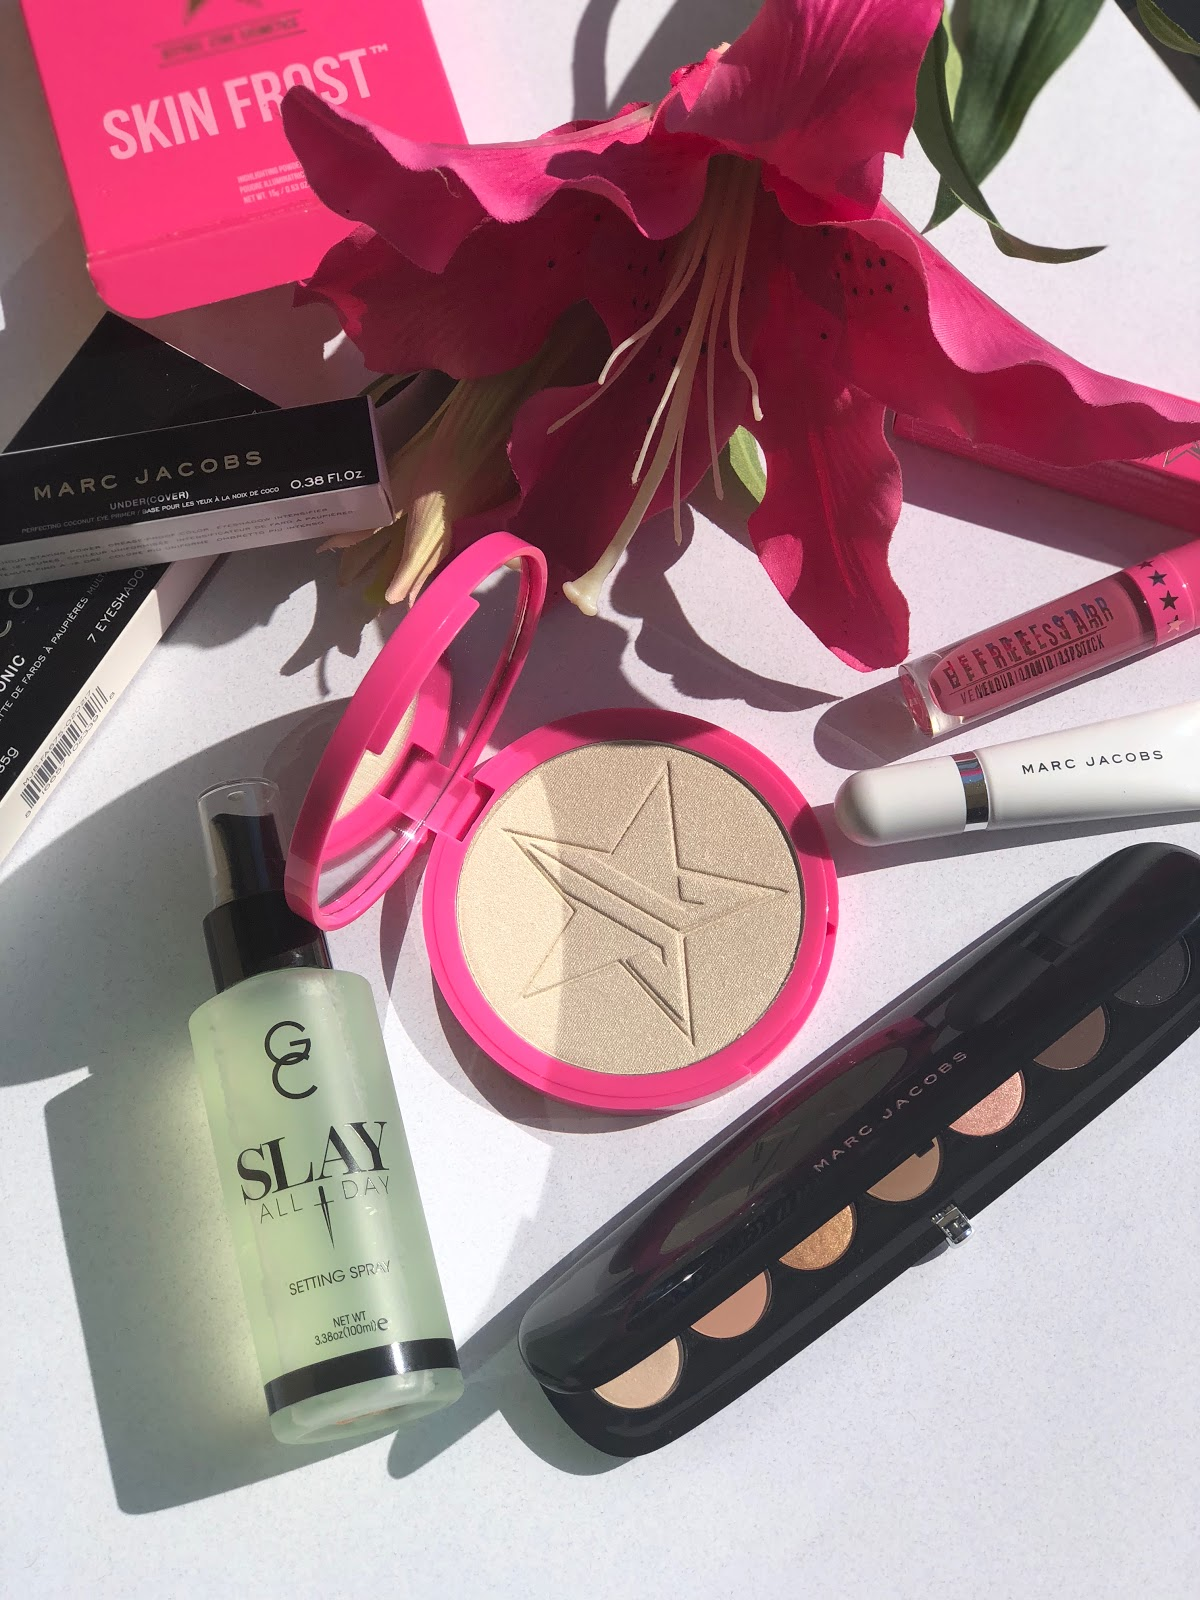 www.ourdubailife.com - My Top 5 Beauty Find January 2018